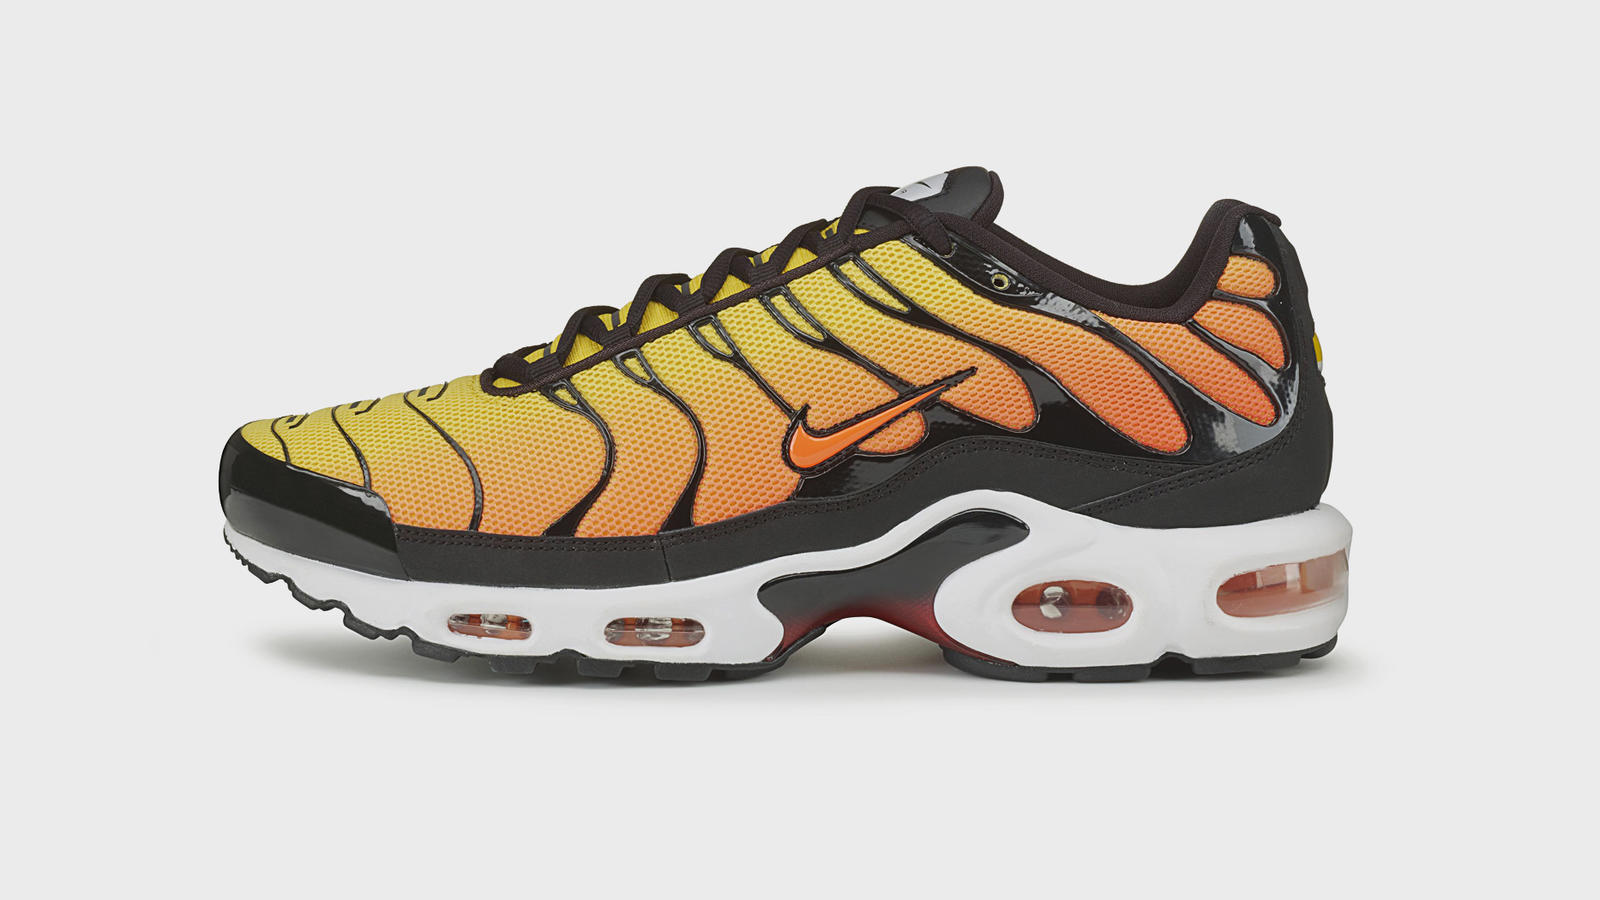 best value 0aaac 04647 Nike Air Max Plus TN History - Nike News